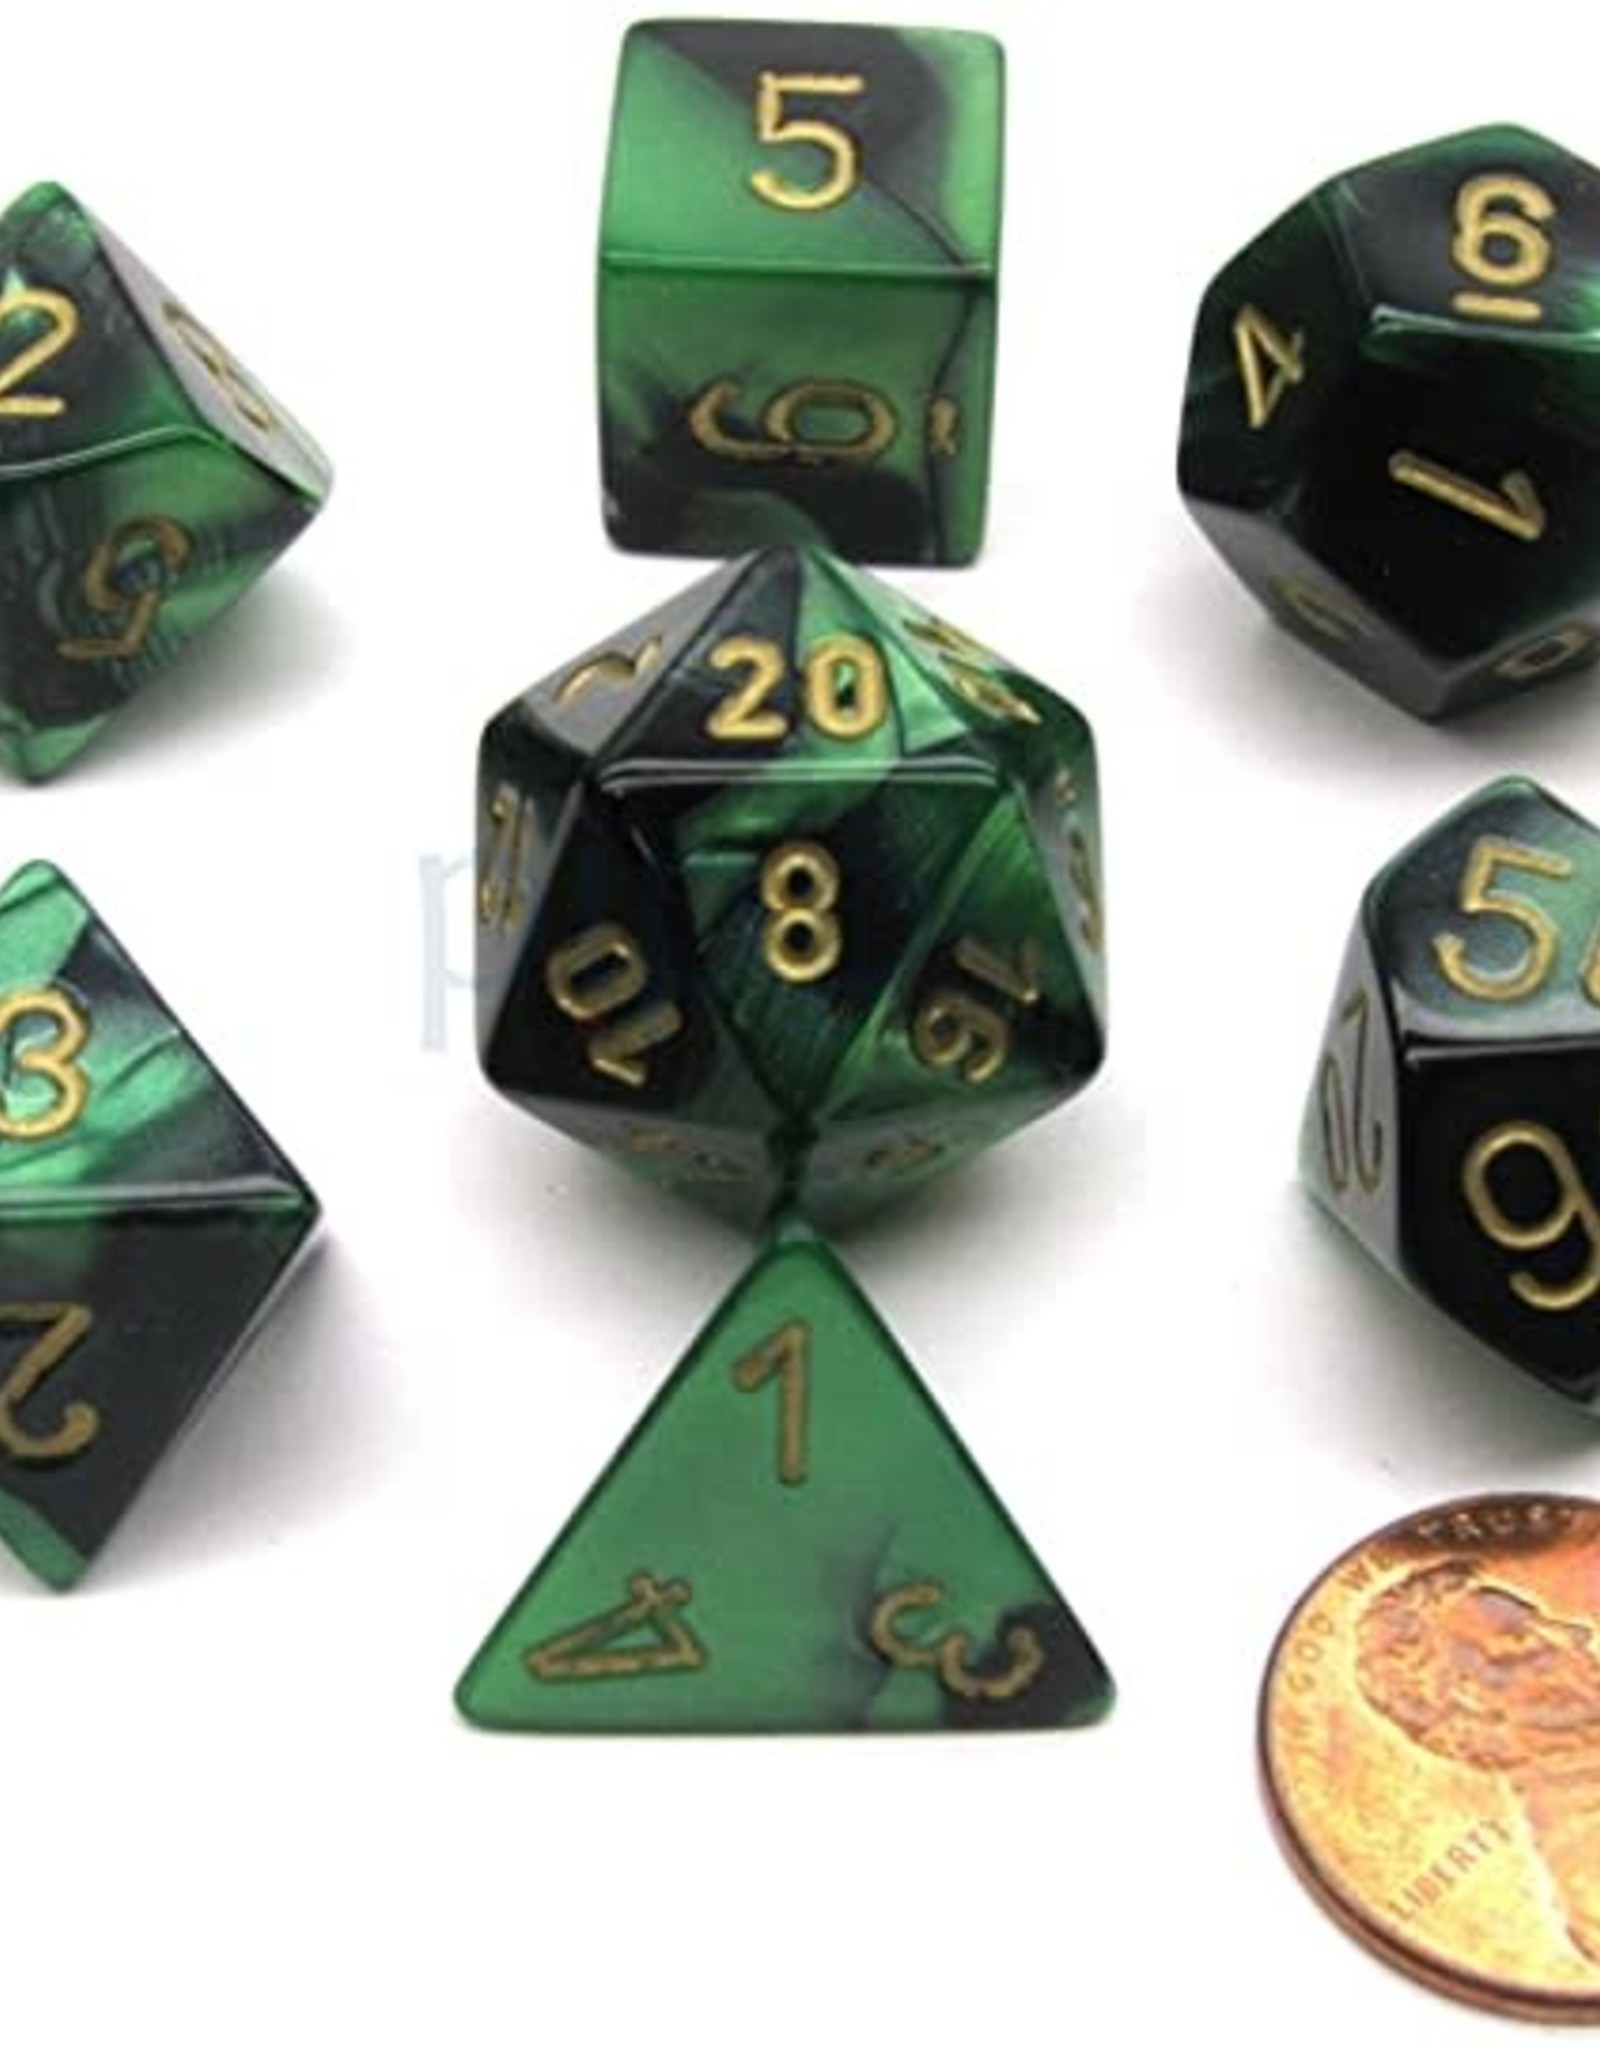 Chessex Polyhedral 7-Die Gemini Chessex Dice Set - Black-Green w/ Gold CHX-26439